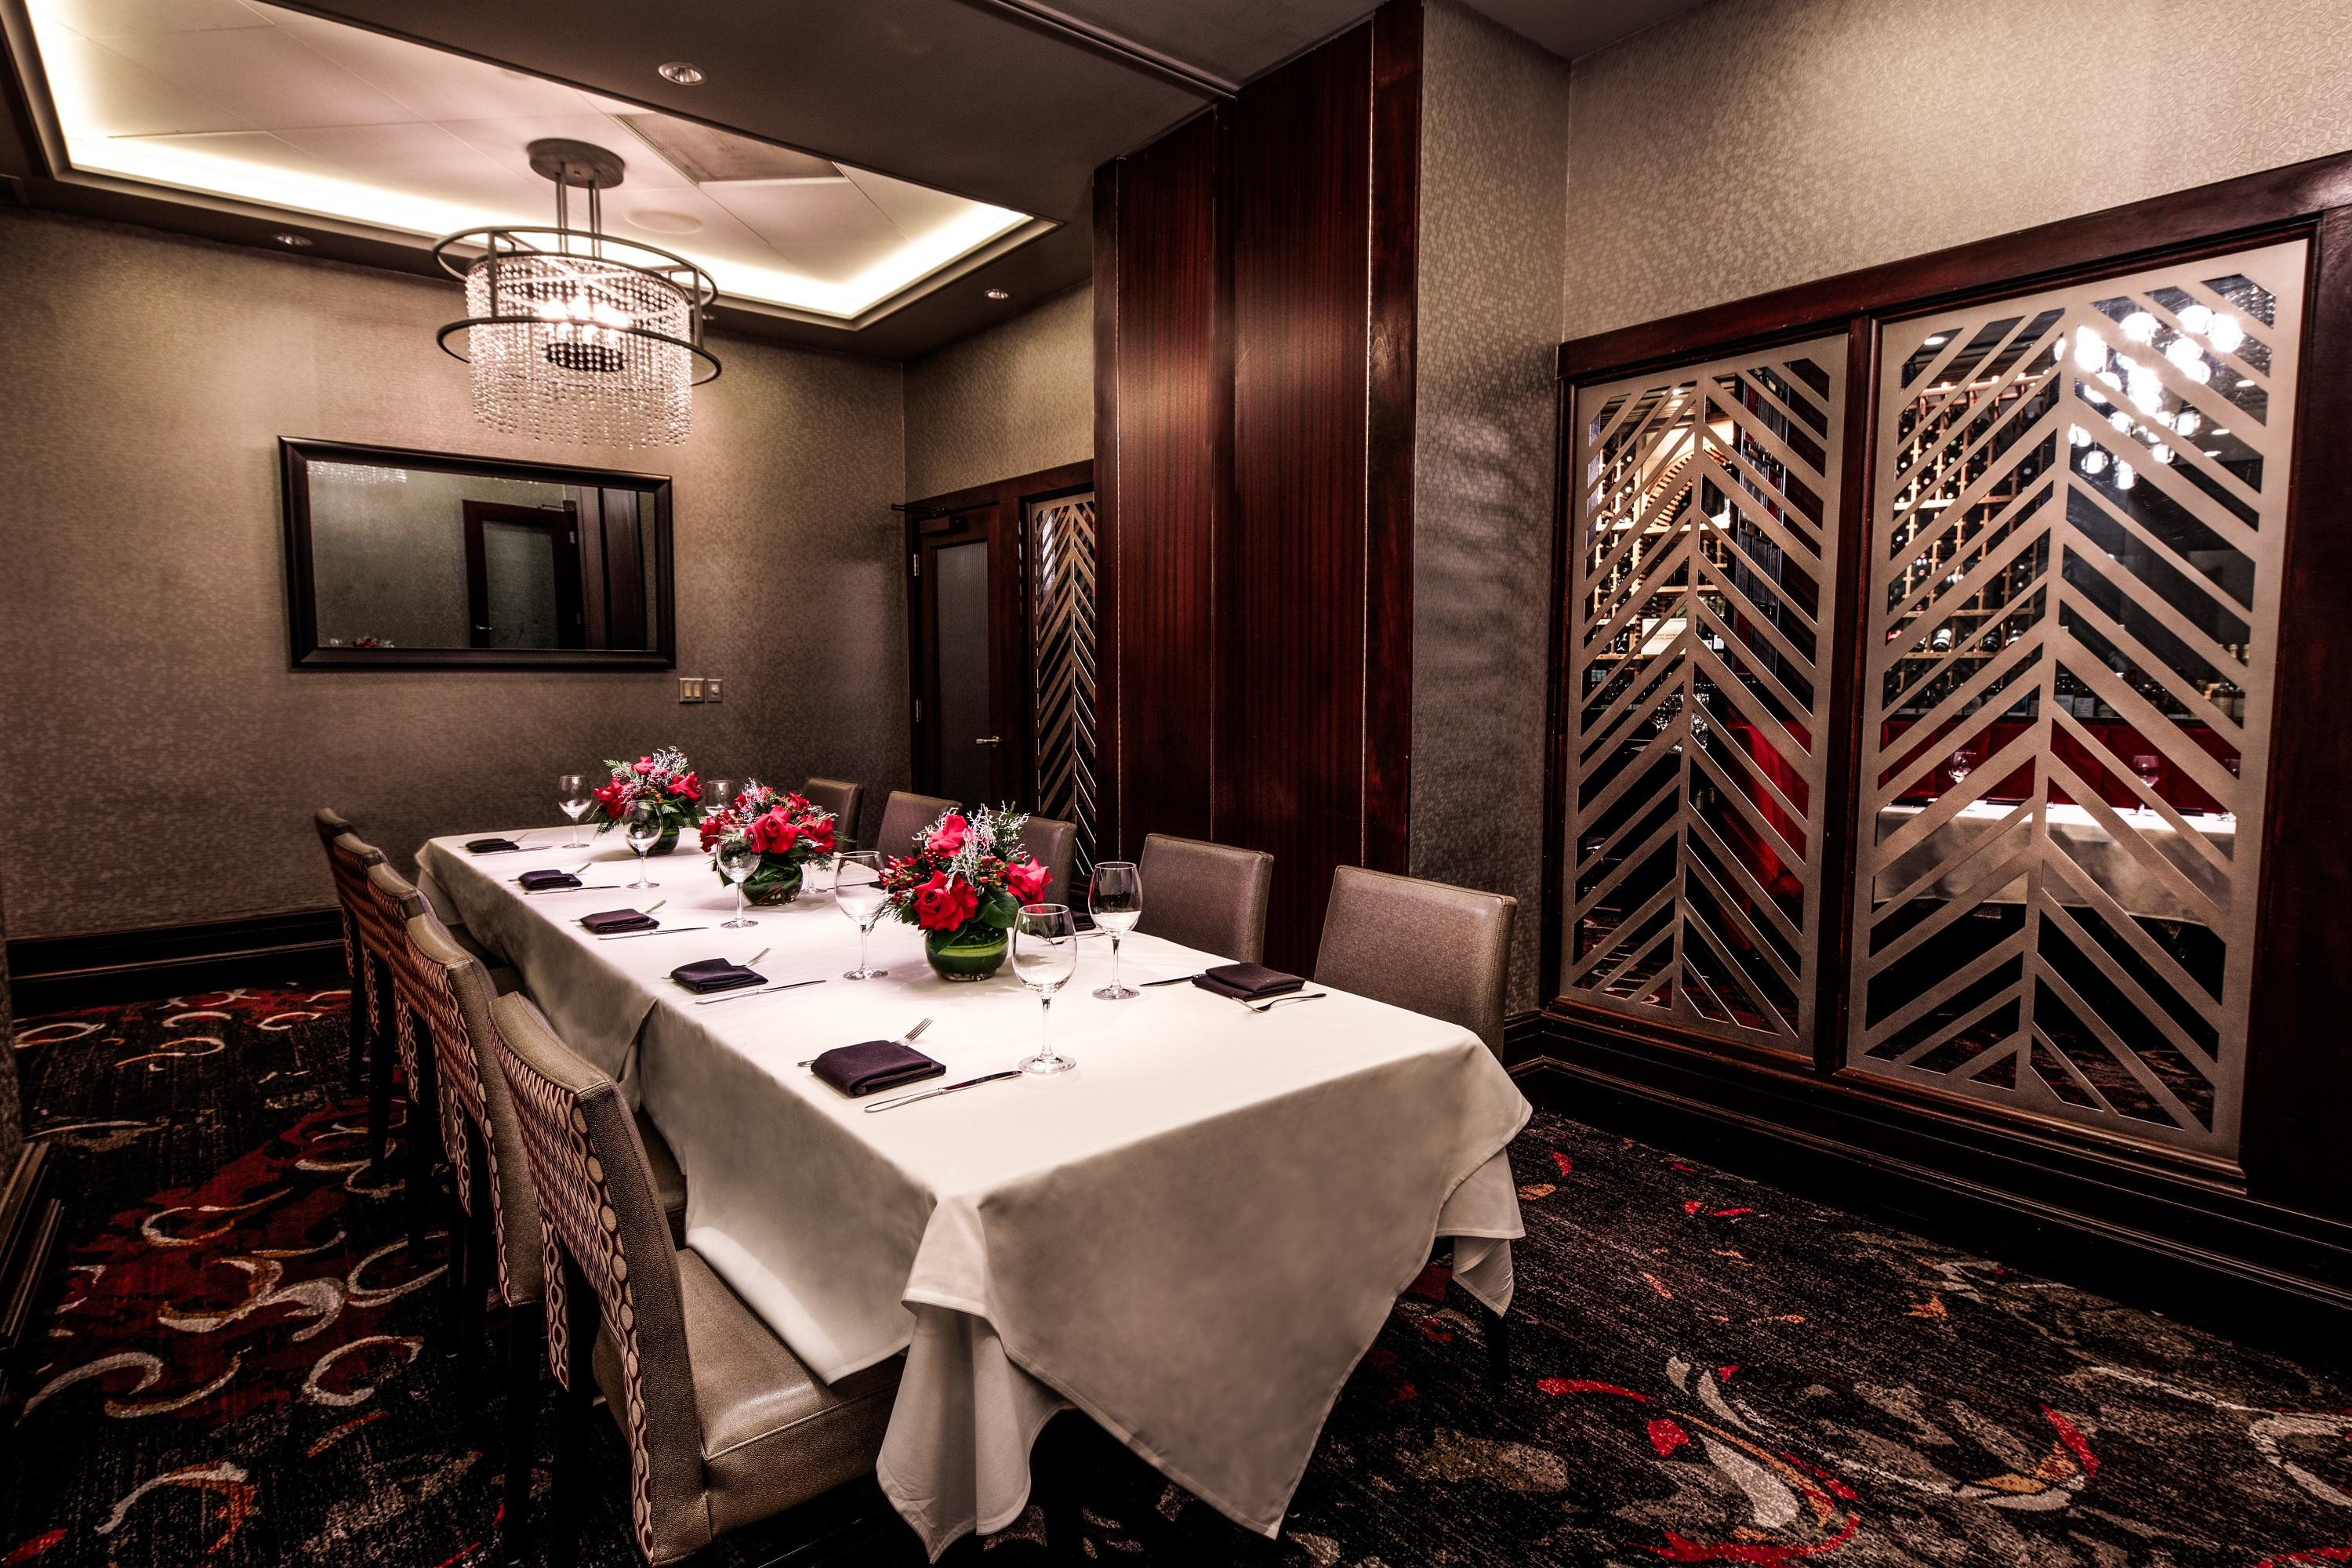 Del Frisco's Double Eagle Steakhouse Houston The Houston Room II private dining room